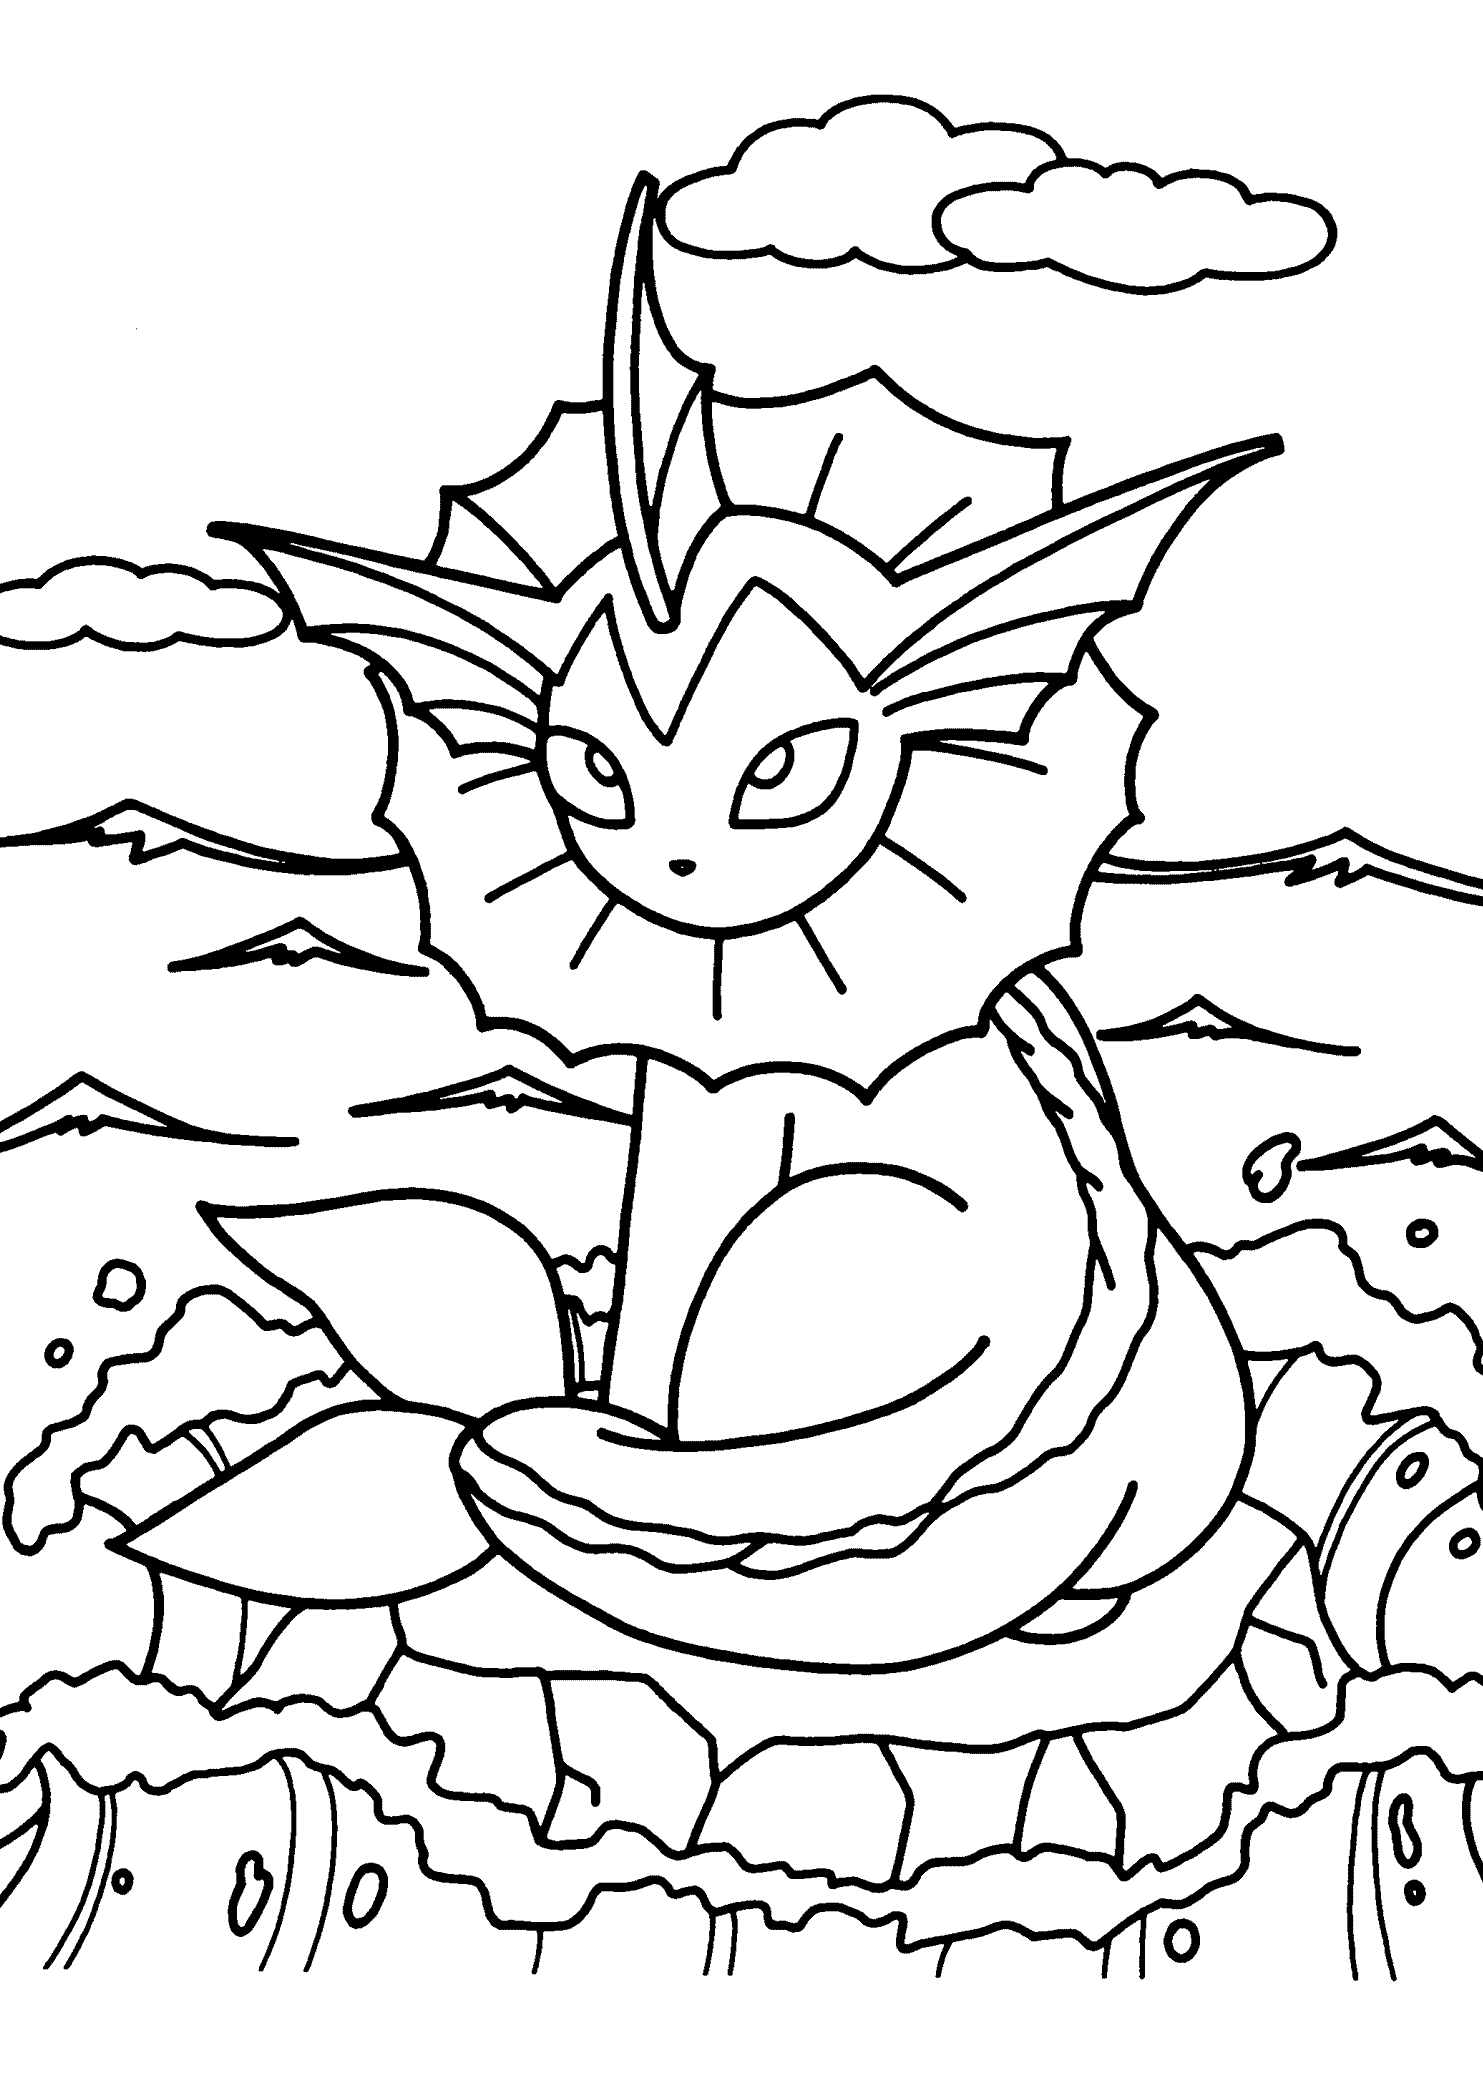 Sceptile Coloring Page At Getcolorings